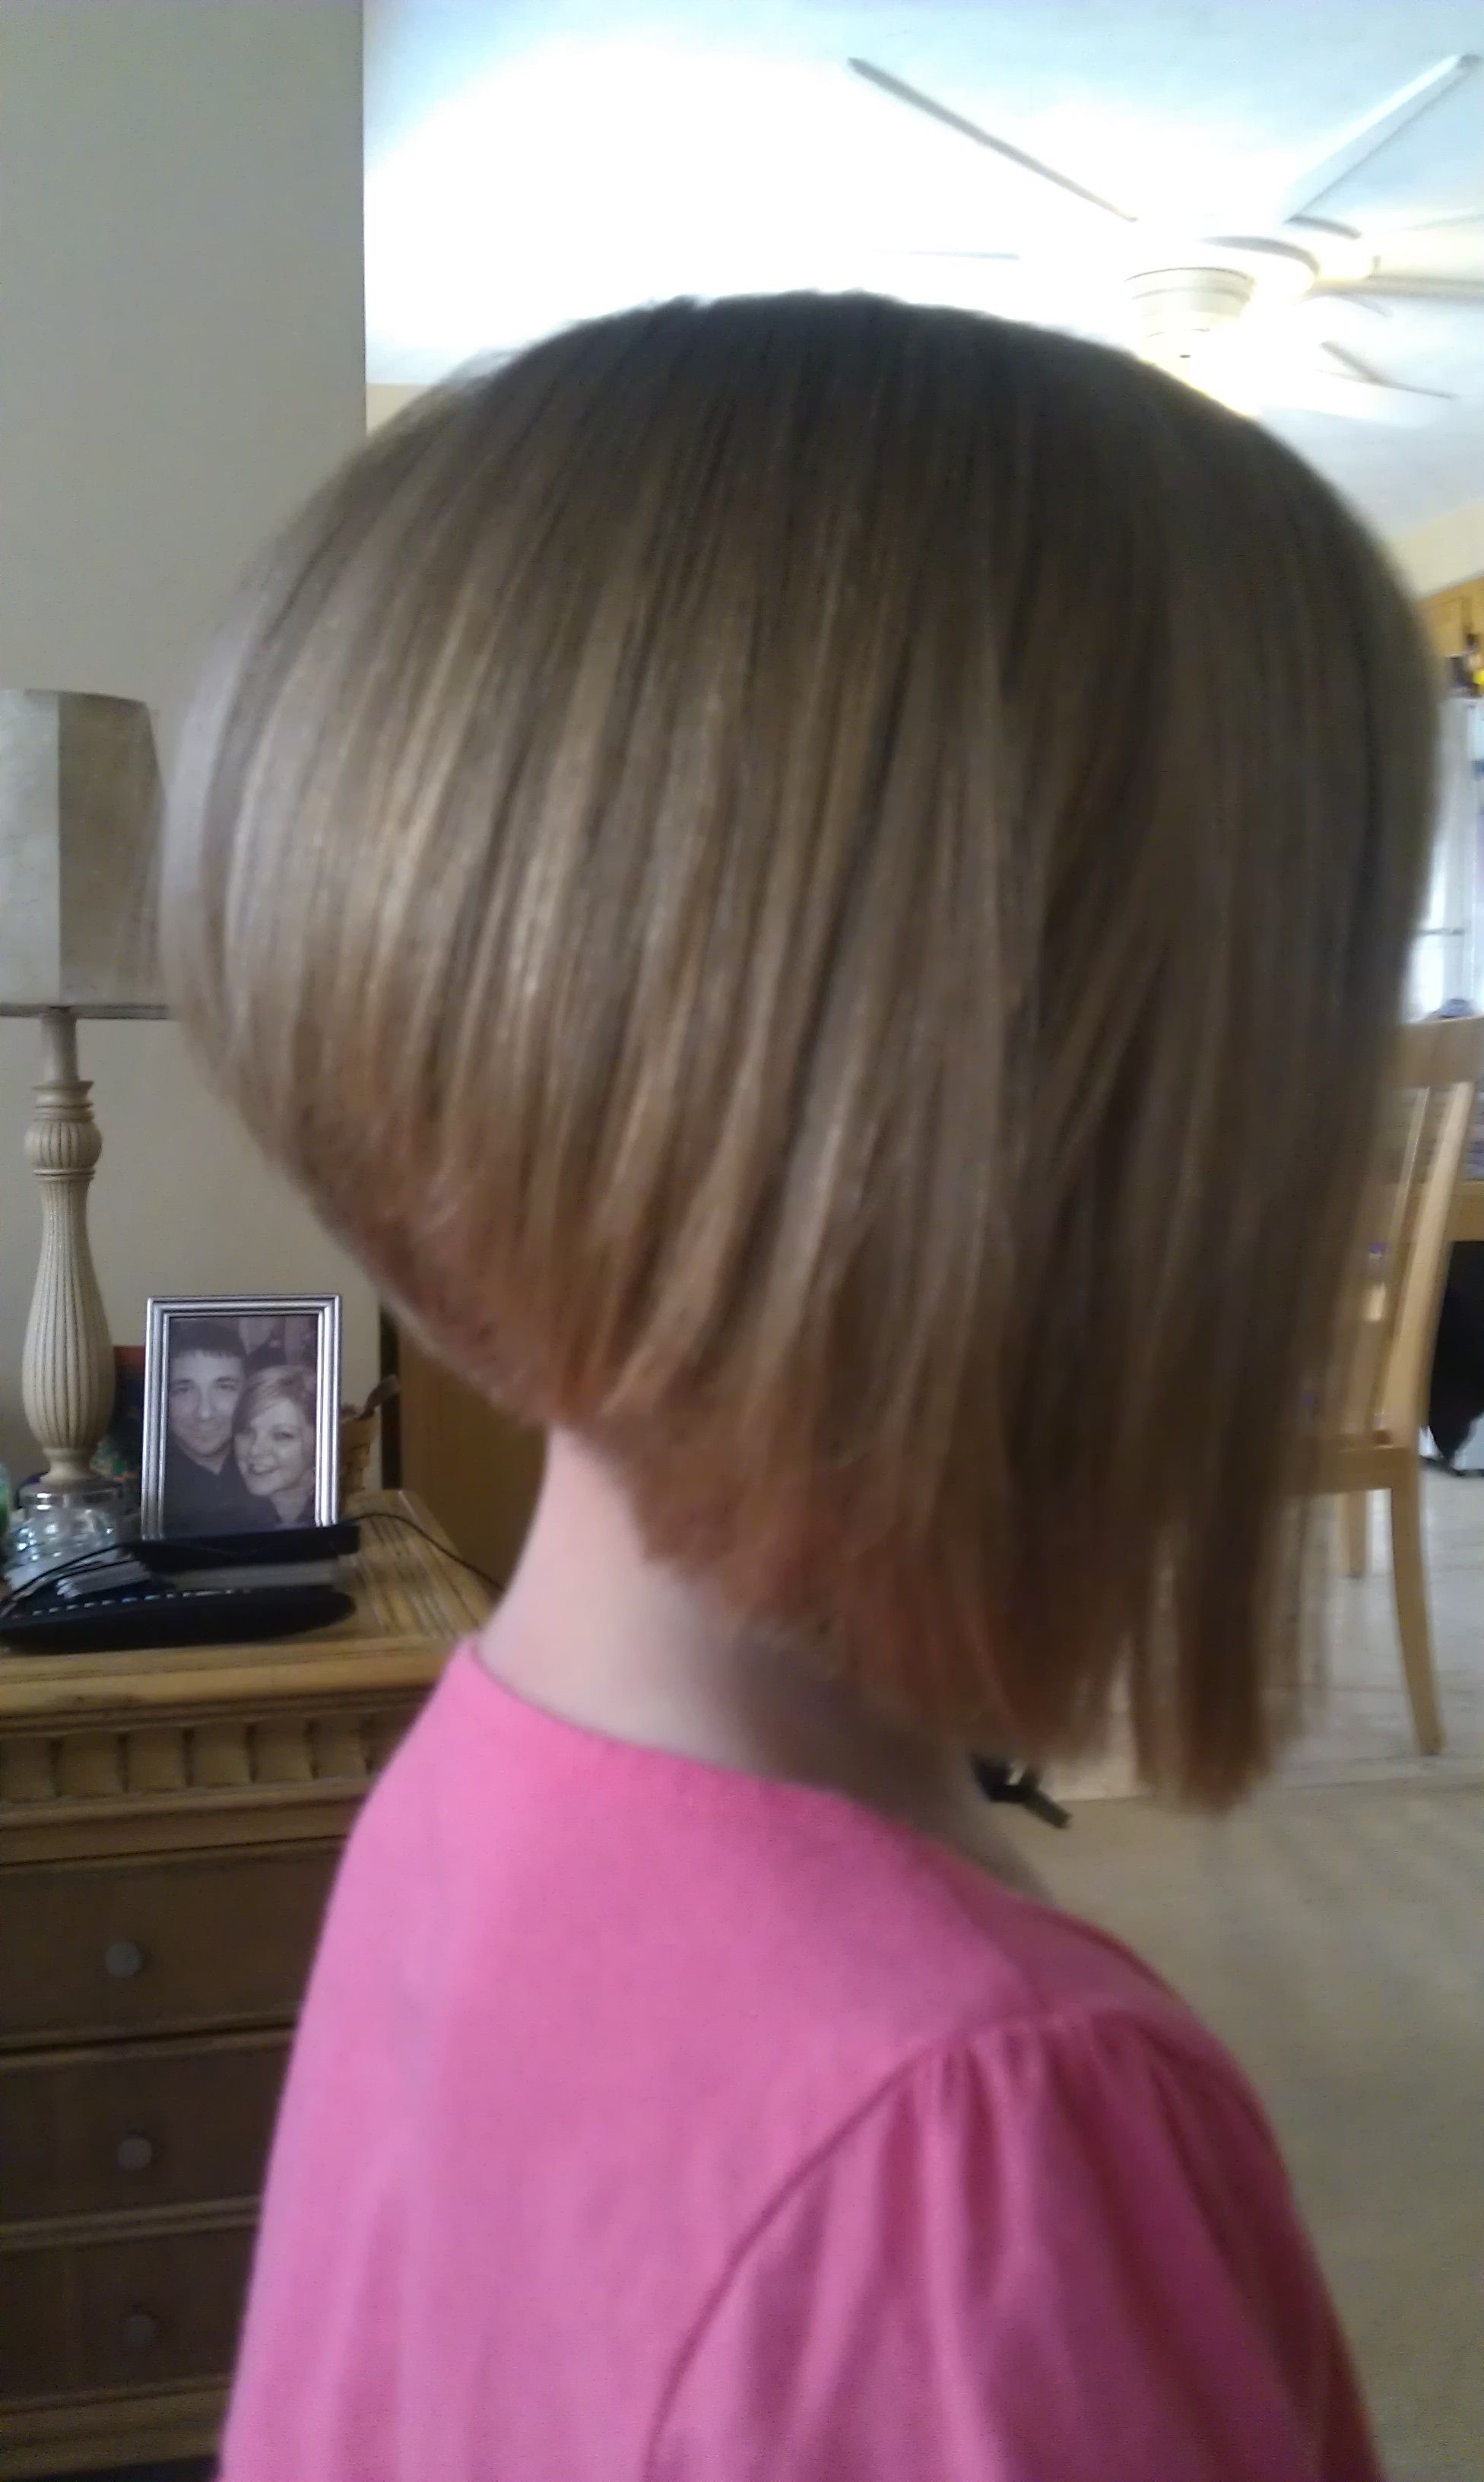 Admirable Stylists Bobs And Child Hairstyles On Pinterest Short Hairstyles Gunalazisus